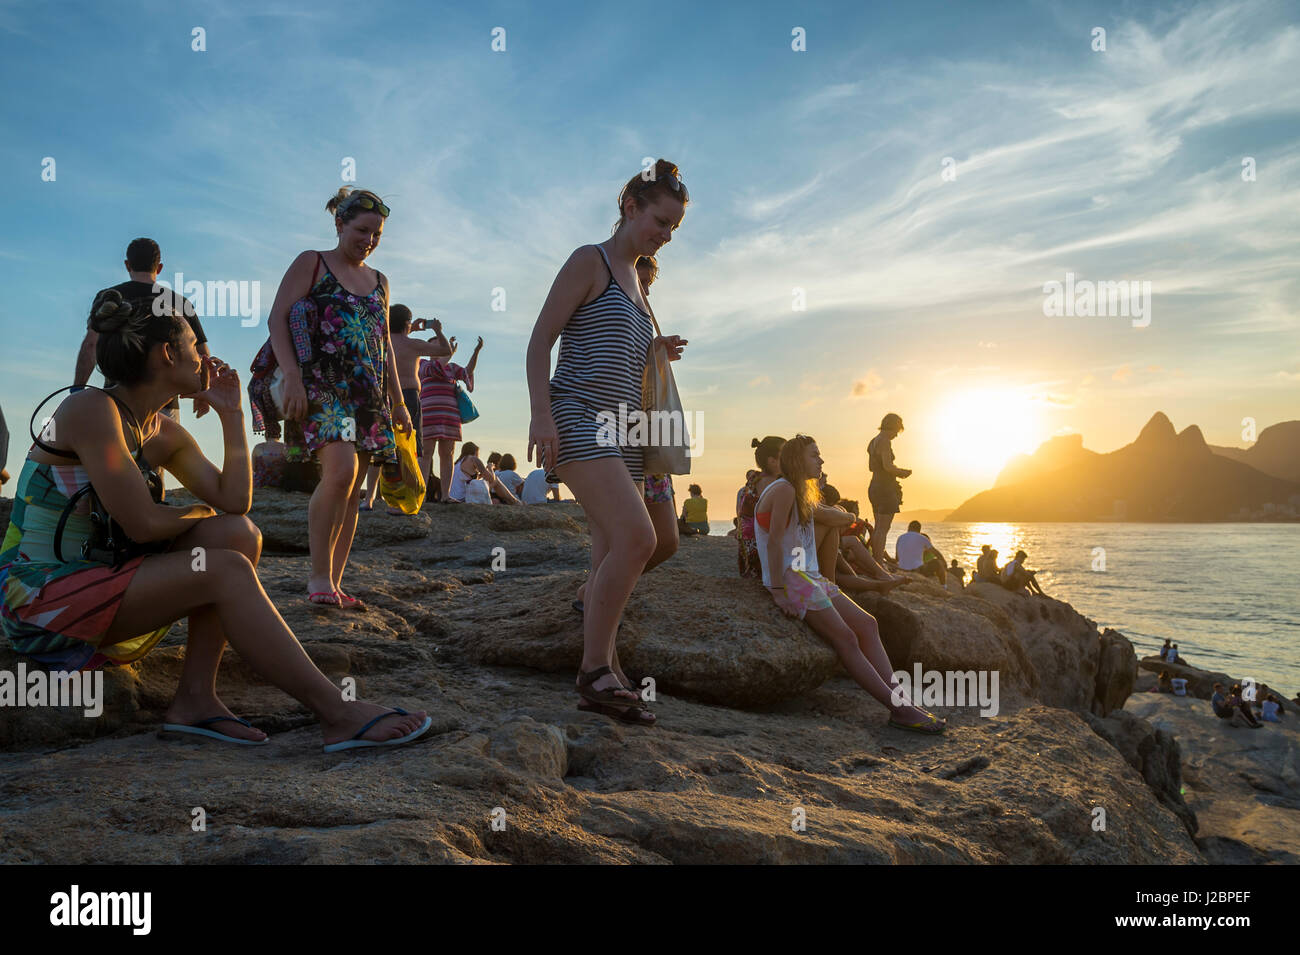 RIO DE JANEIRO - FEBRUARY 20, 2017: Crowds of visitors flock to the rocks at Arpoador to watch sunset, an increasingly - Stock Image